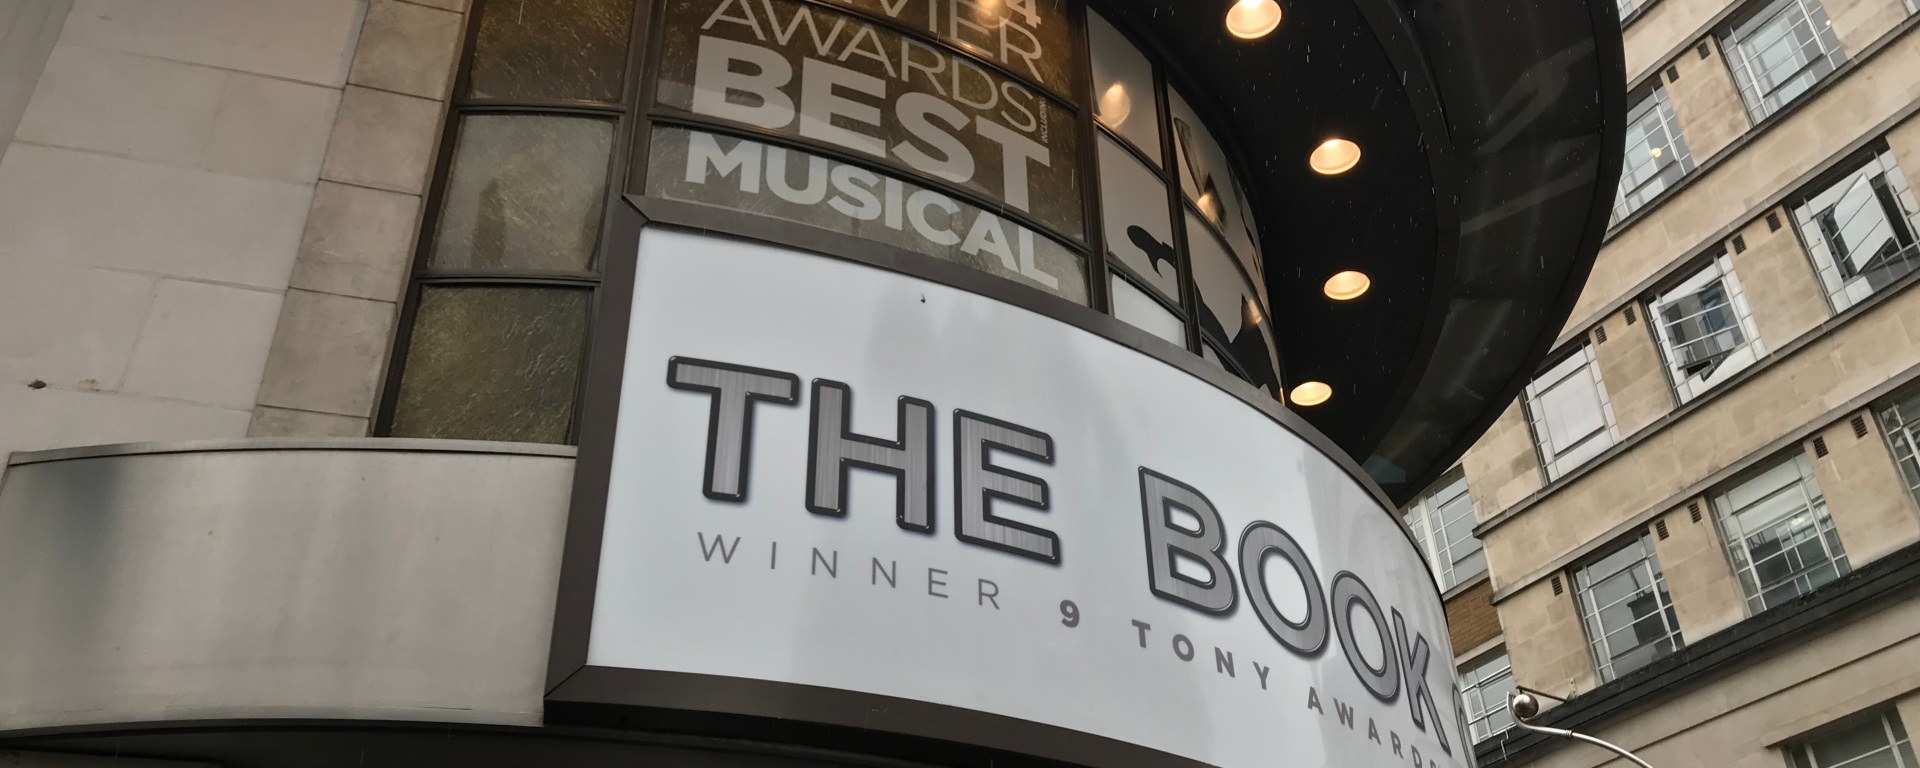 The Book of Mormon London Prince of Wales Theatre Coventry St, London